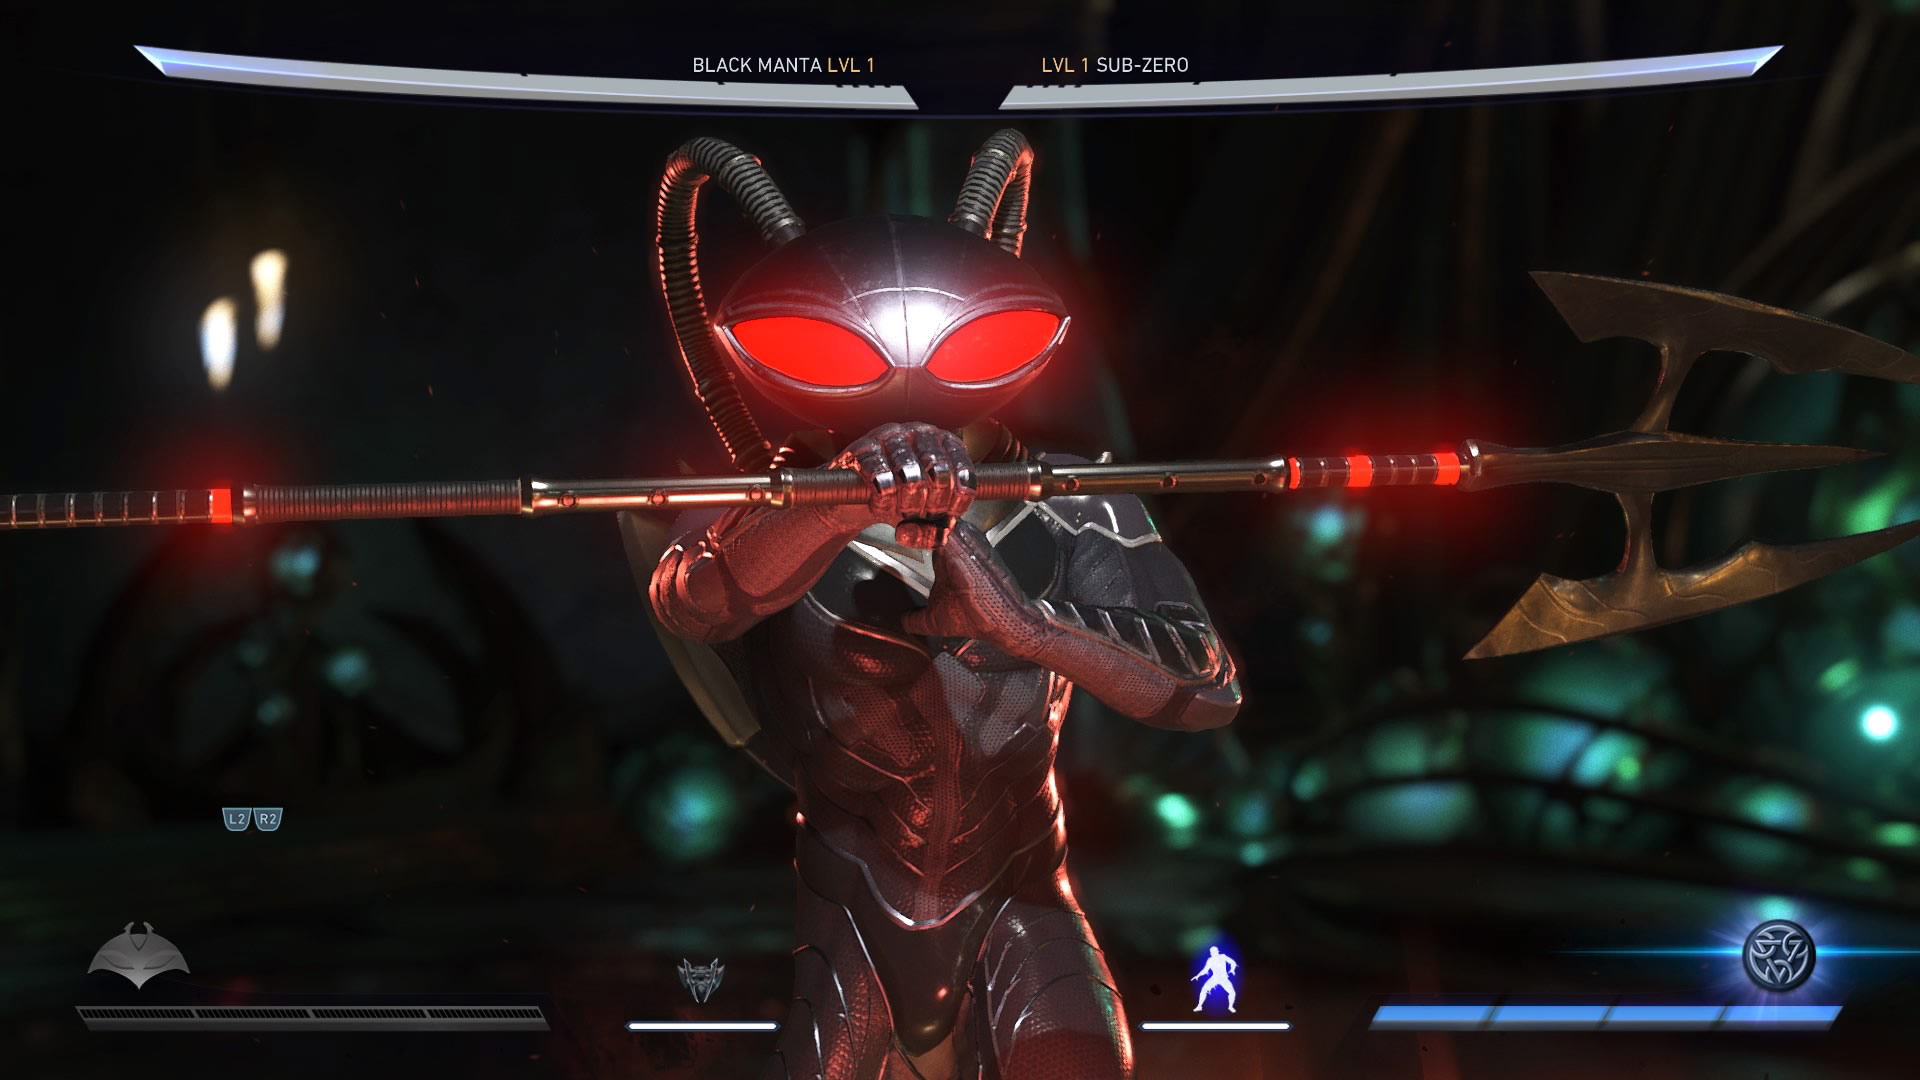 Black Manta screenshots in Injustice 2 4 out of 7 image gallery